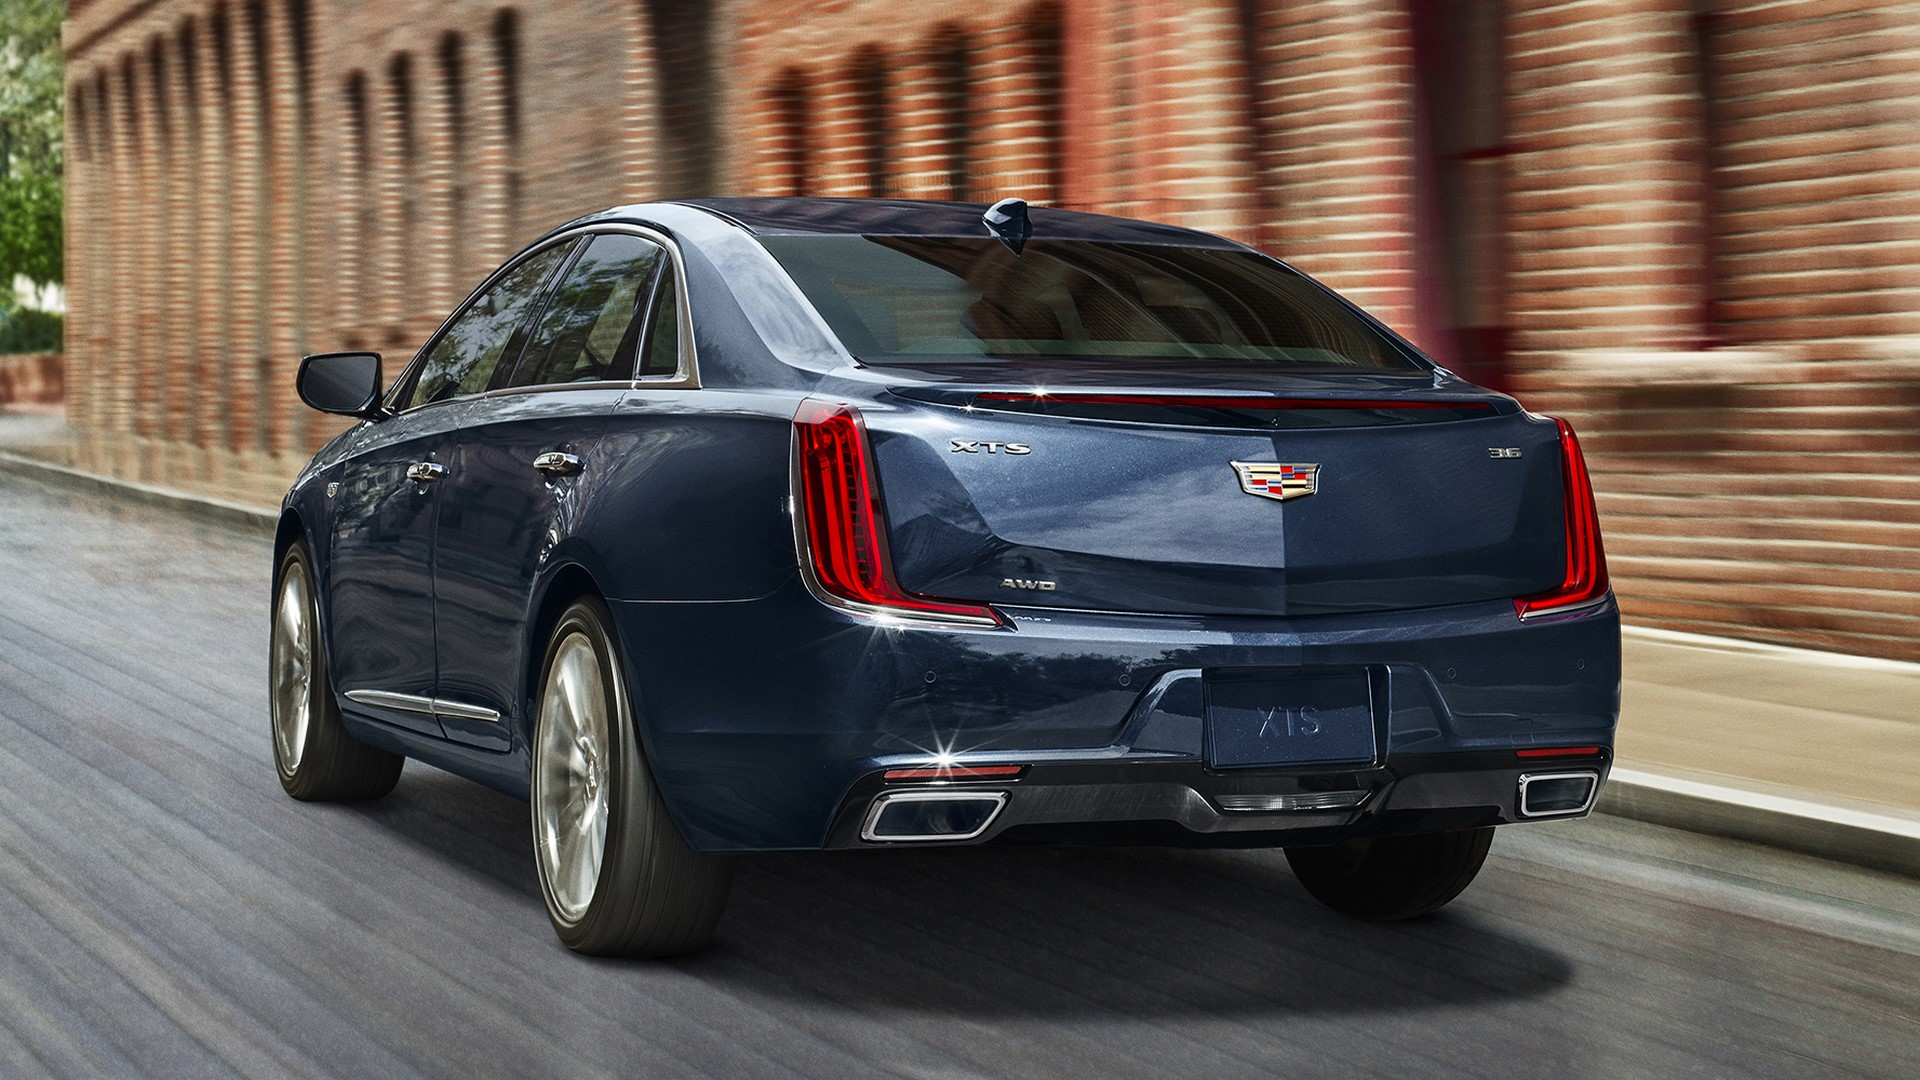 The 2018 Cadillac XTS luxury sedan is elevated with the new generation of design and technology. XTS Platinum shown here in Dark Adriatic Blue Metallic.